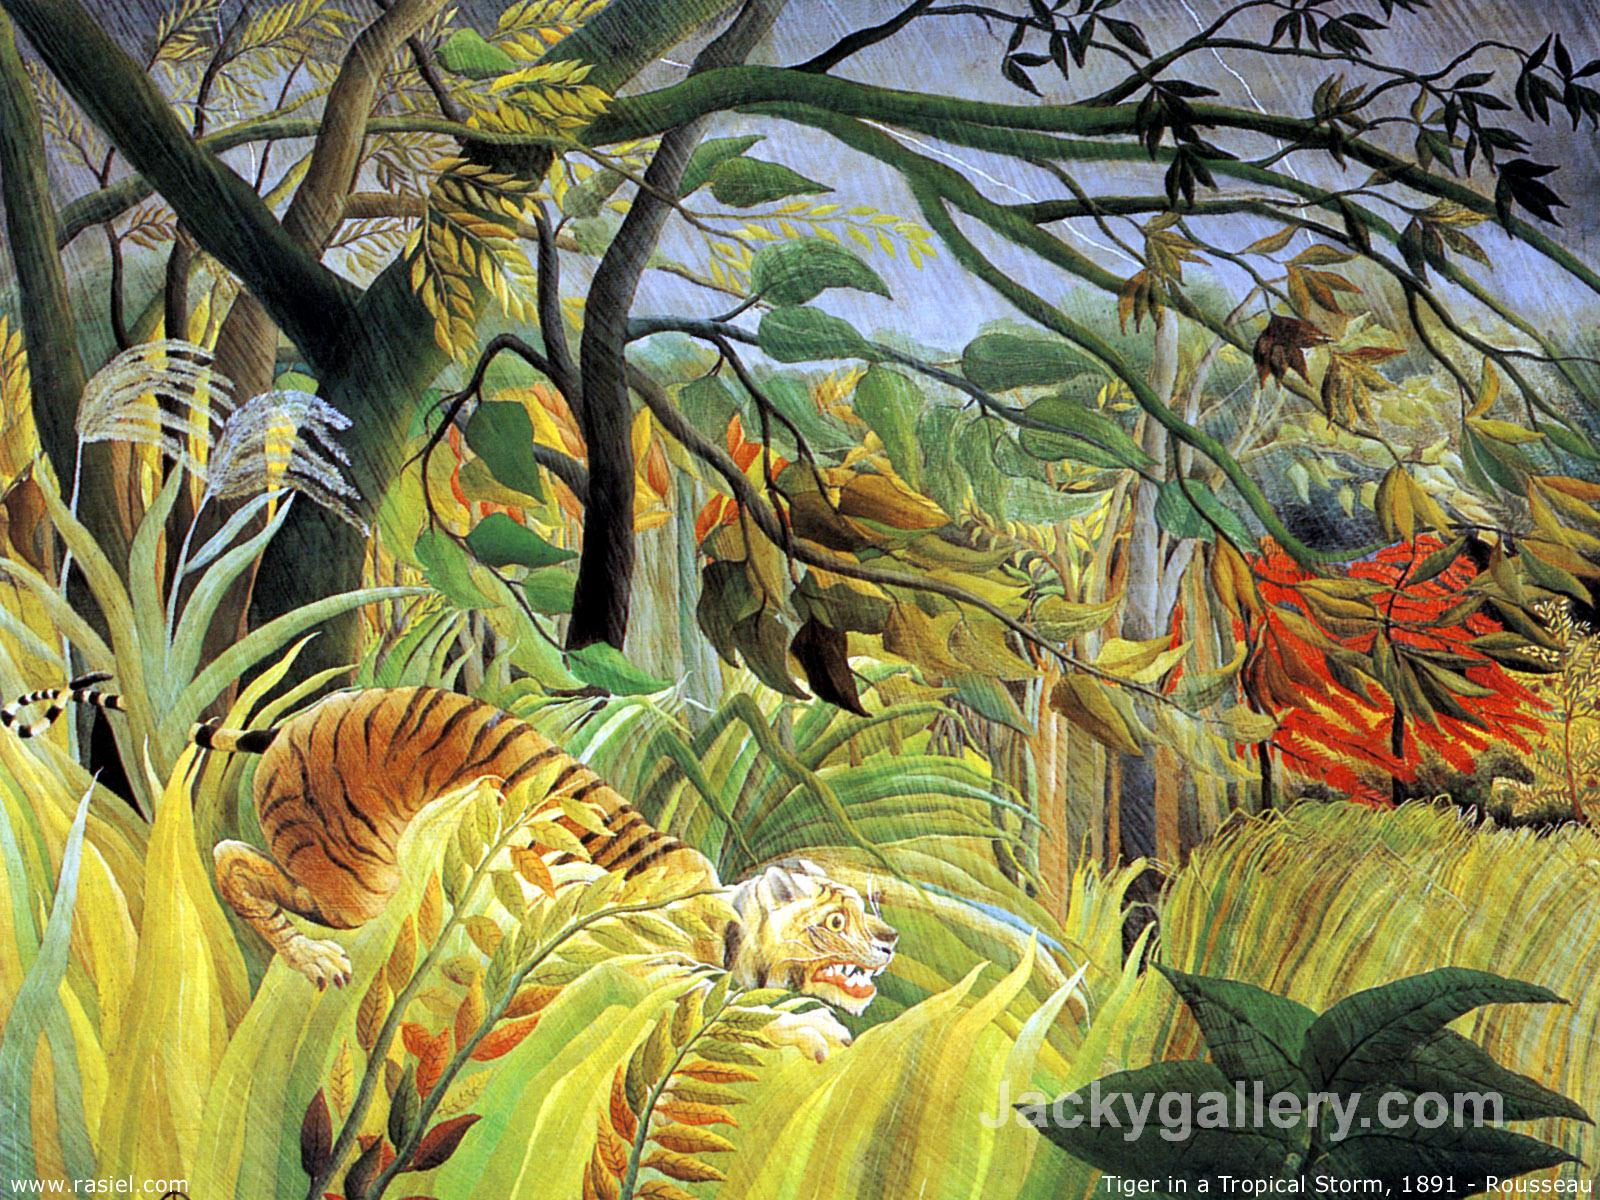 Tiger in a Tropical Storm (Surprised) by Henri Rousseau paintings reproduction